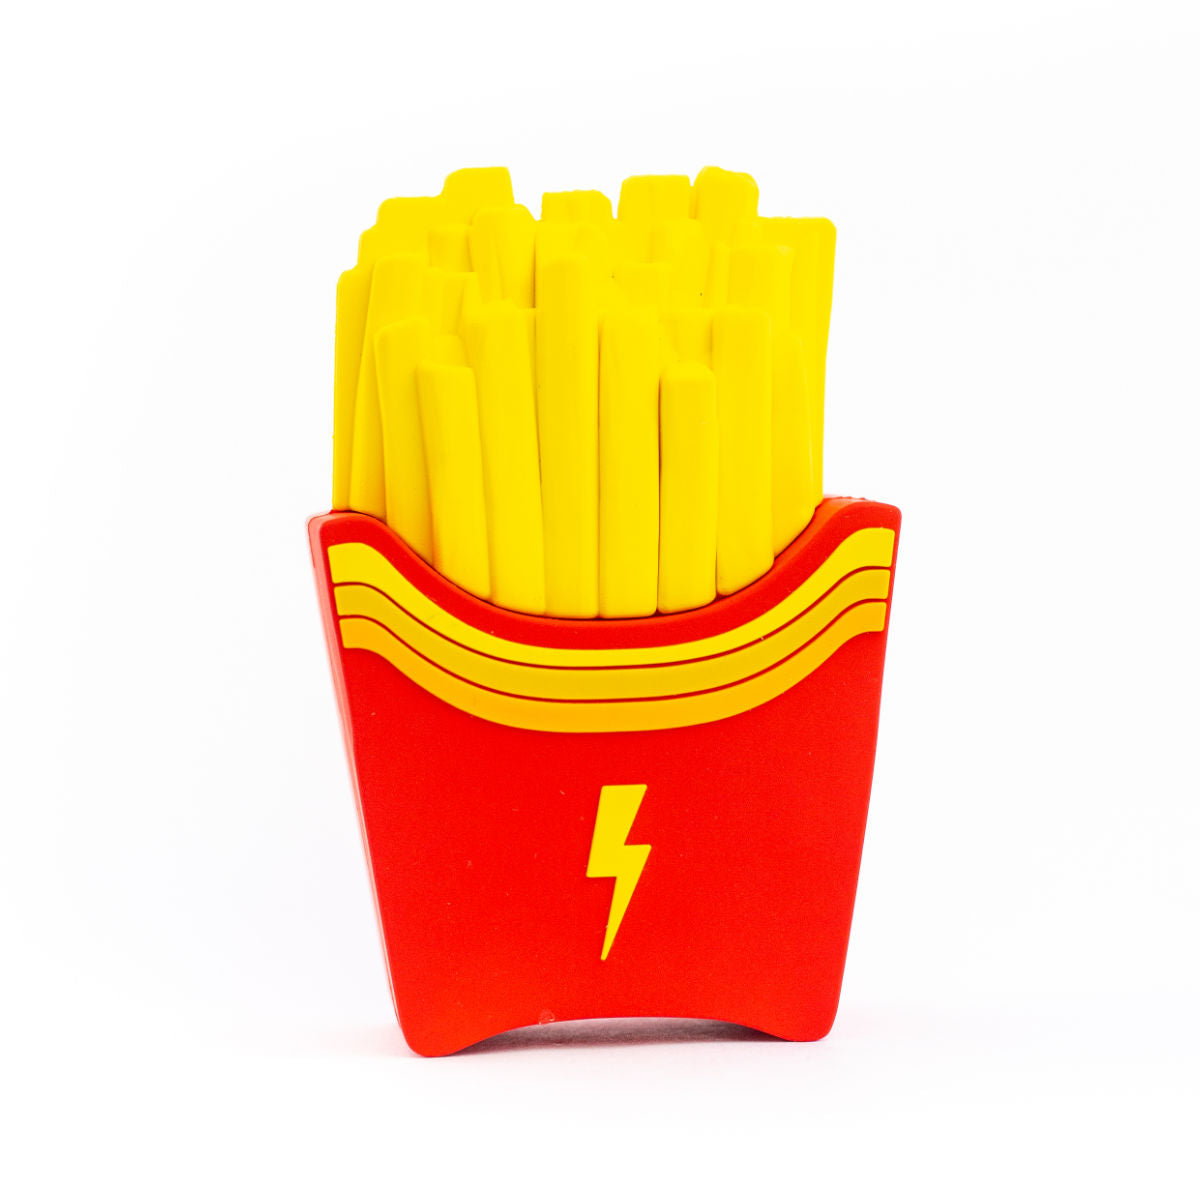 Moji Emoji power bank 2600mAh, fries